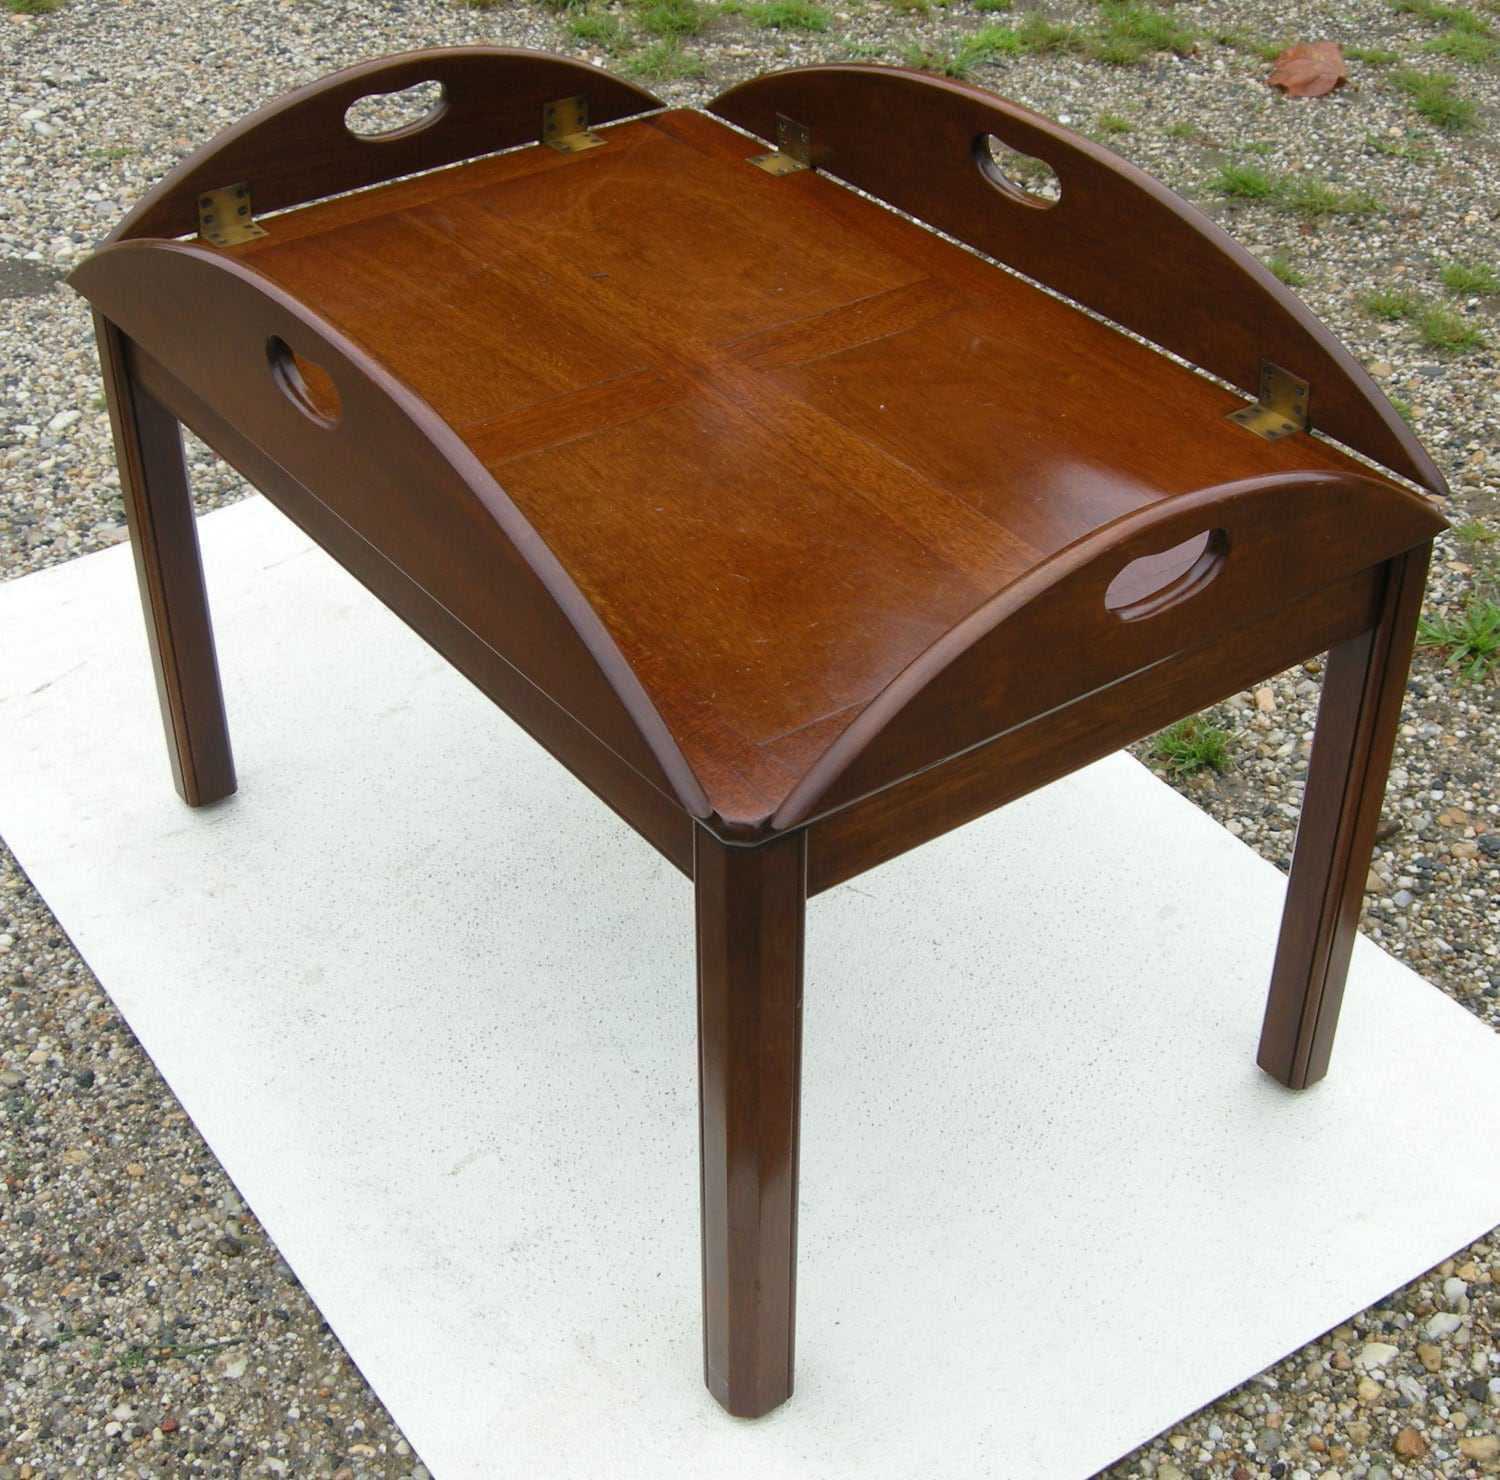 Vintage Butler Coffee Table: Unavailable Listing On Etsy